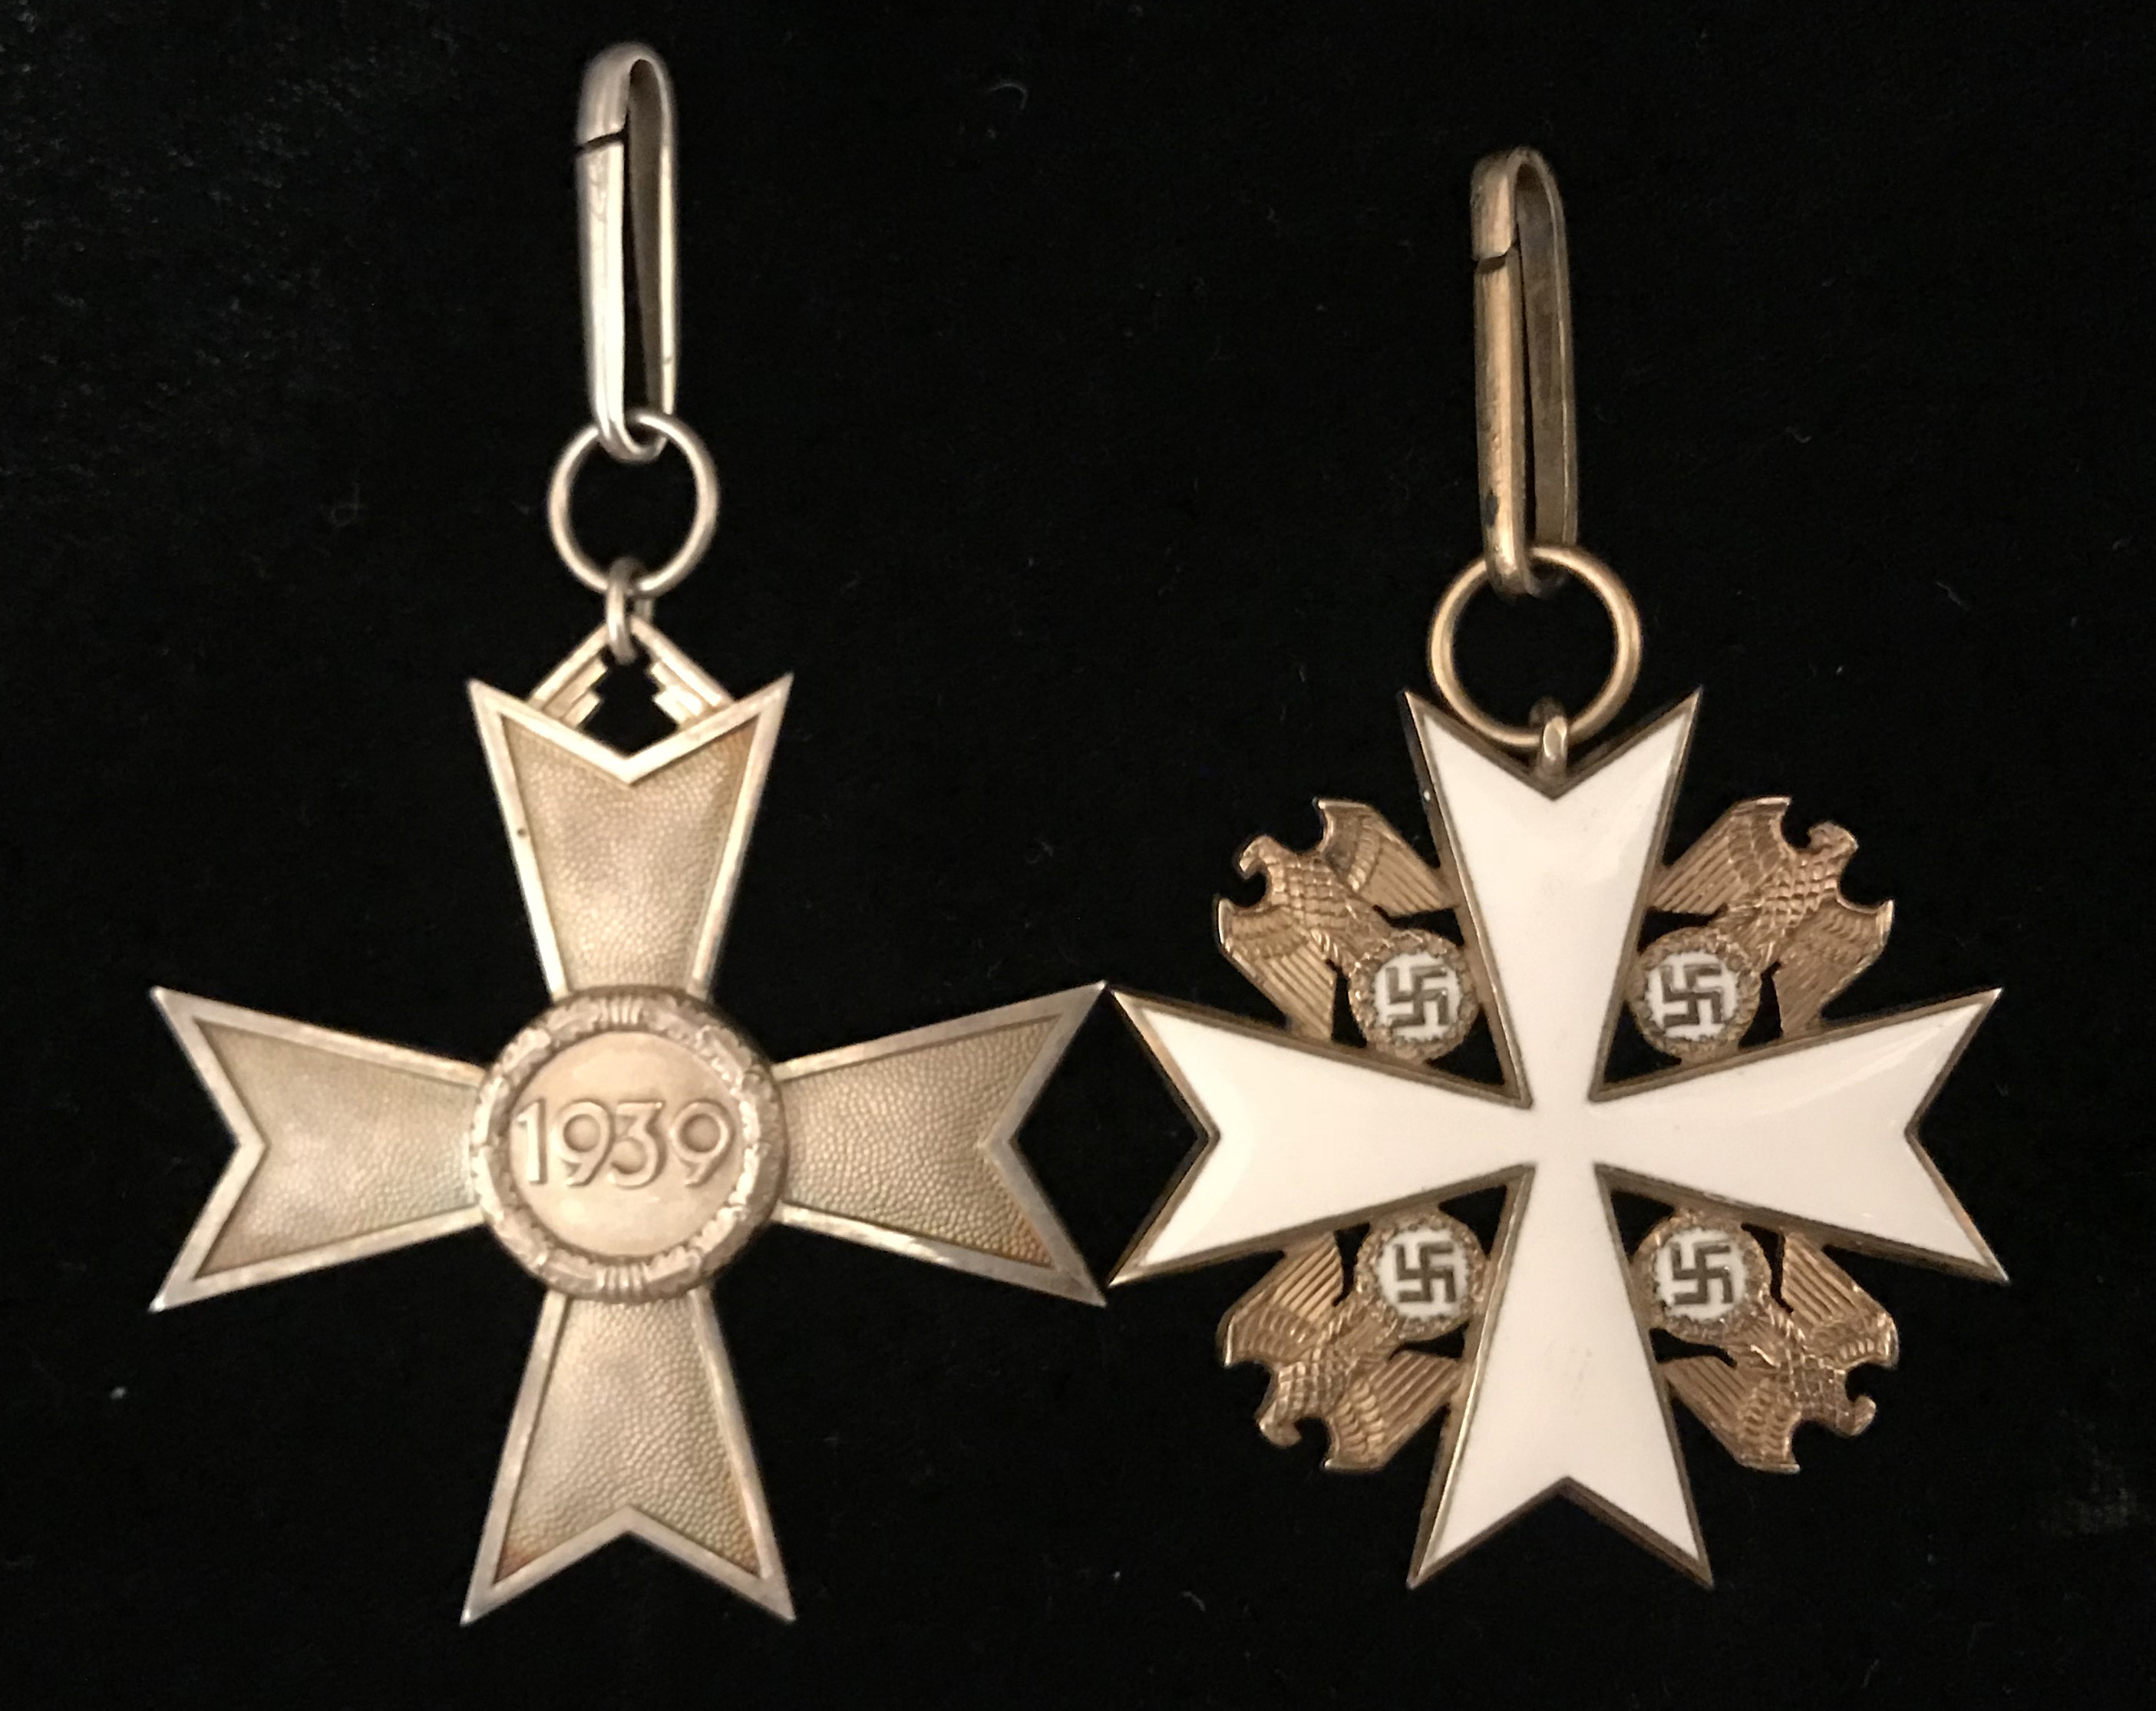 Figure 2: Ring on Deschler made knight Cross of the War Merit Cross and Eagle Order Deschler Ring comparison